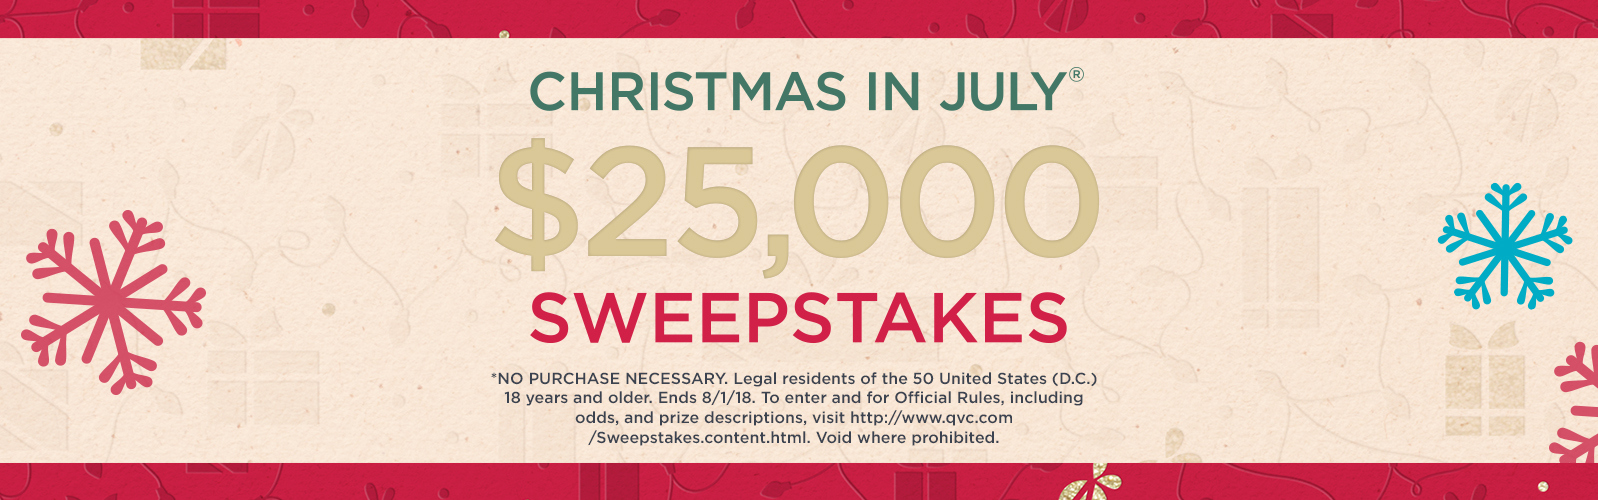 Christmas in July® Sweepstakes $25,000  *NO PURCHASE NECESSARY. Legal residents of the 50 United States (D.C.) 18 years and older. Ends 8/1/18. To enter and for Official Rules, including odds, and prize descriptions, visit https://www.qvc.com/Sweepstakes.content.html. Void where prohibited.